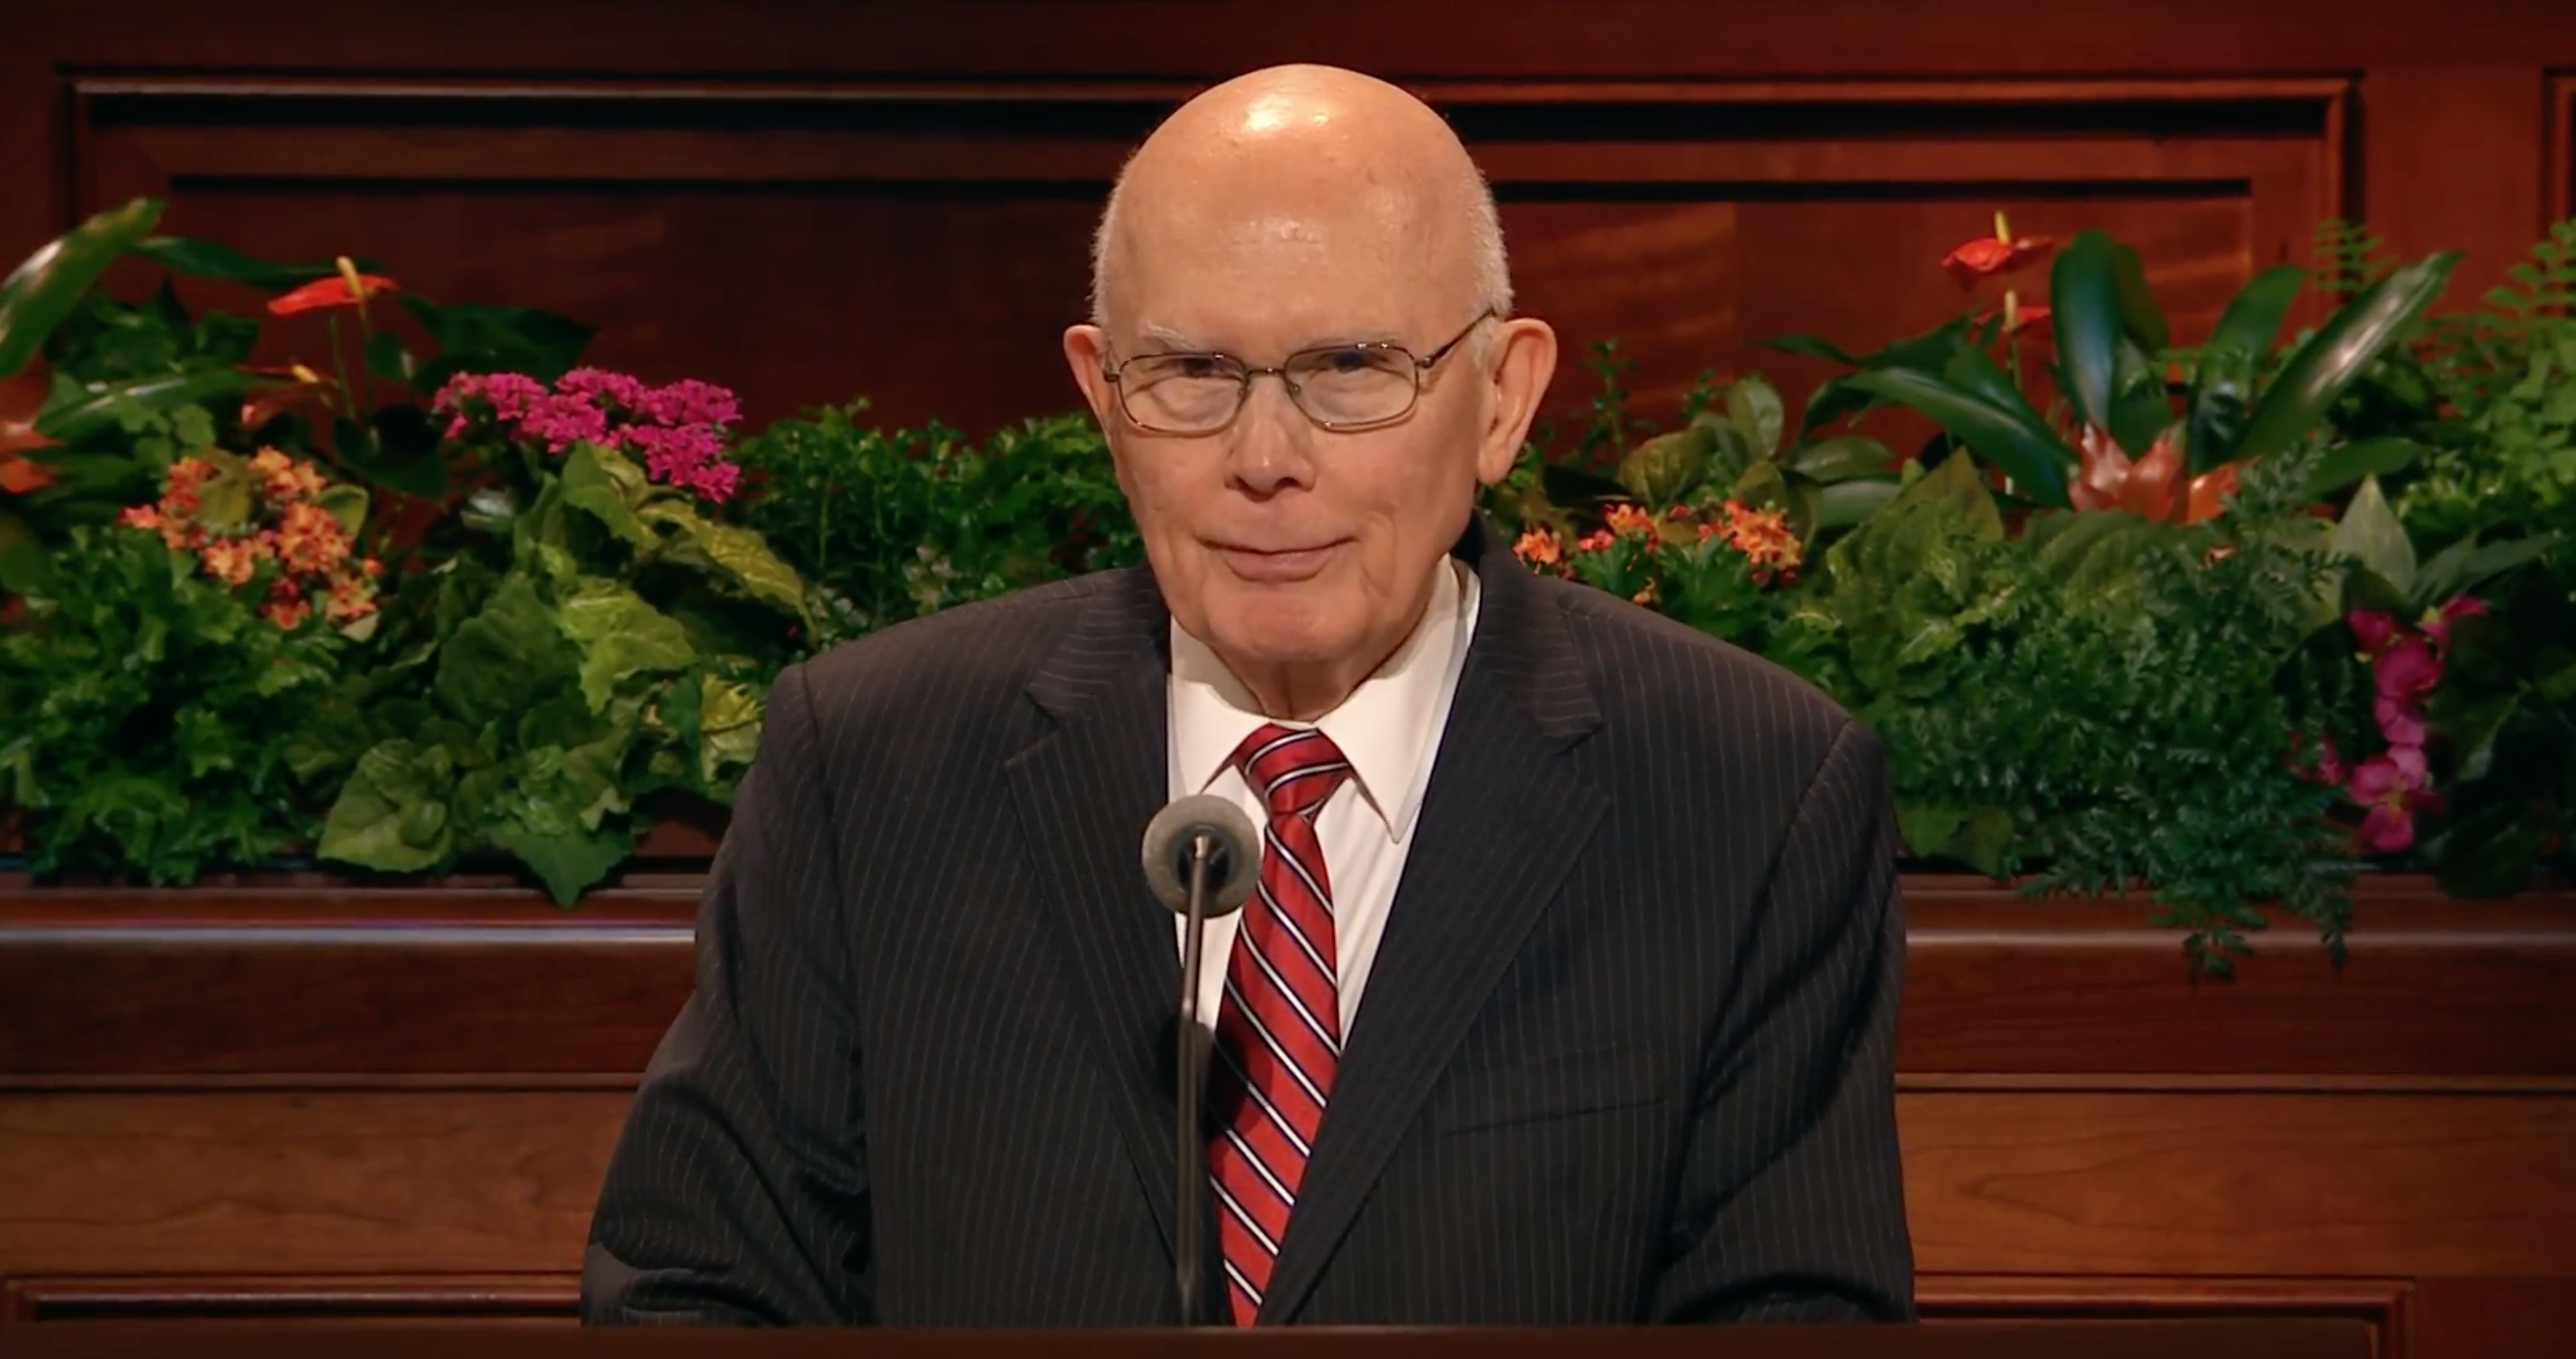 President Dallin H. Oaks delivers an address during the October 2018 general women's session.